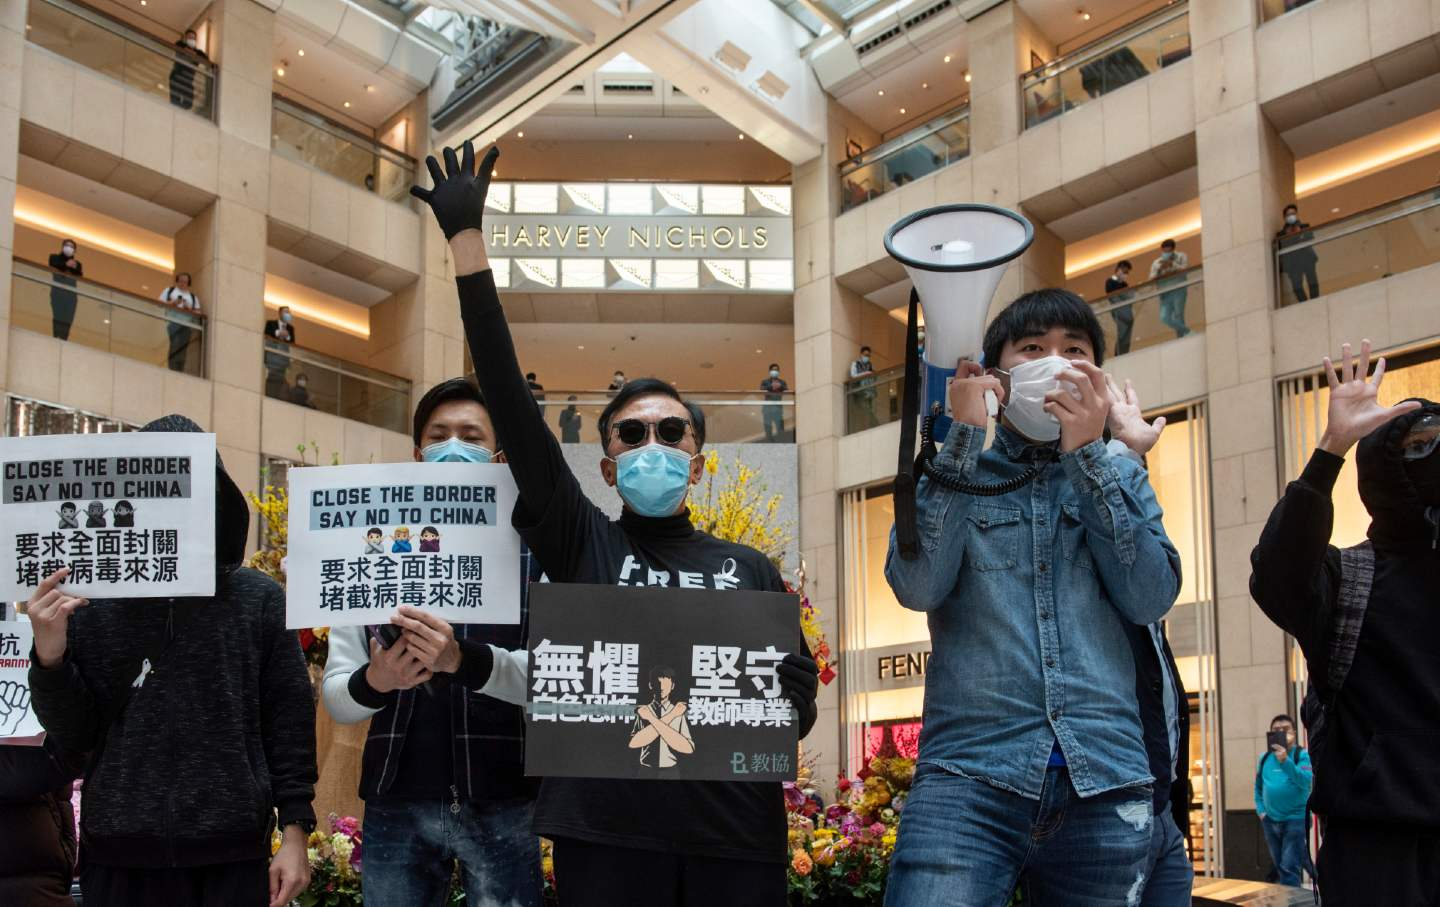 Protestors at a Hong Kong mall